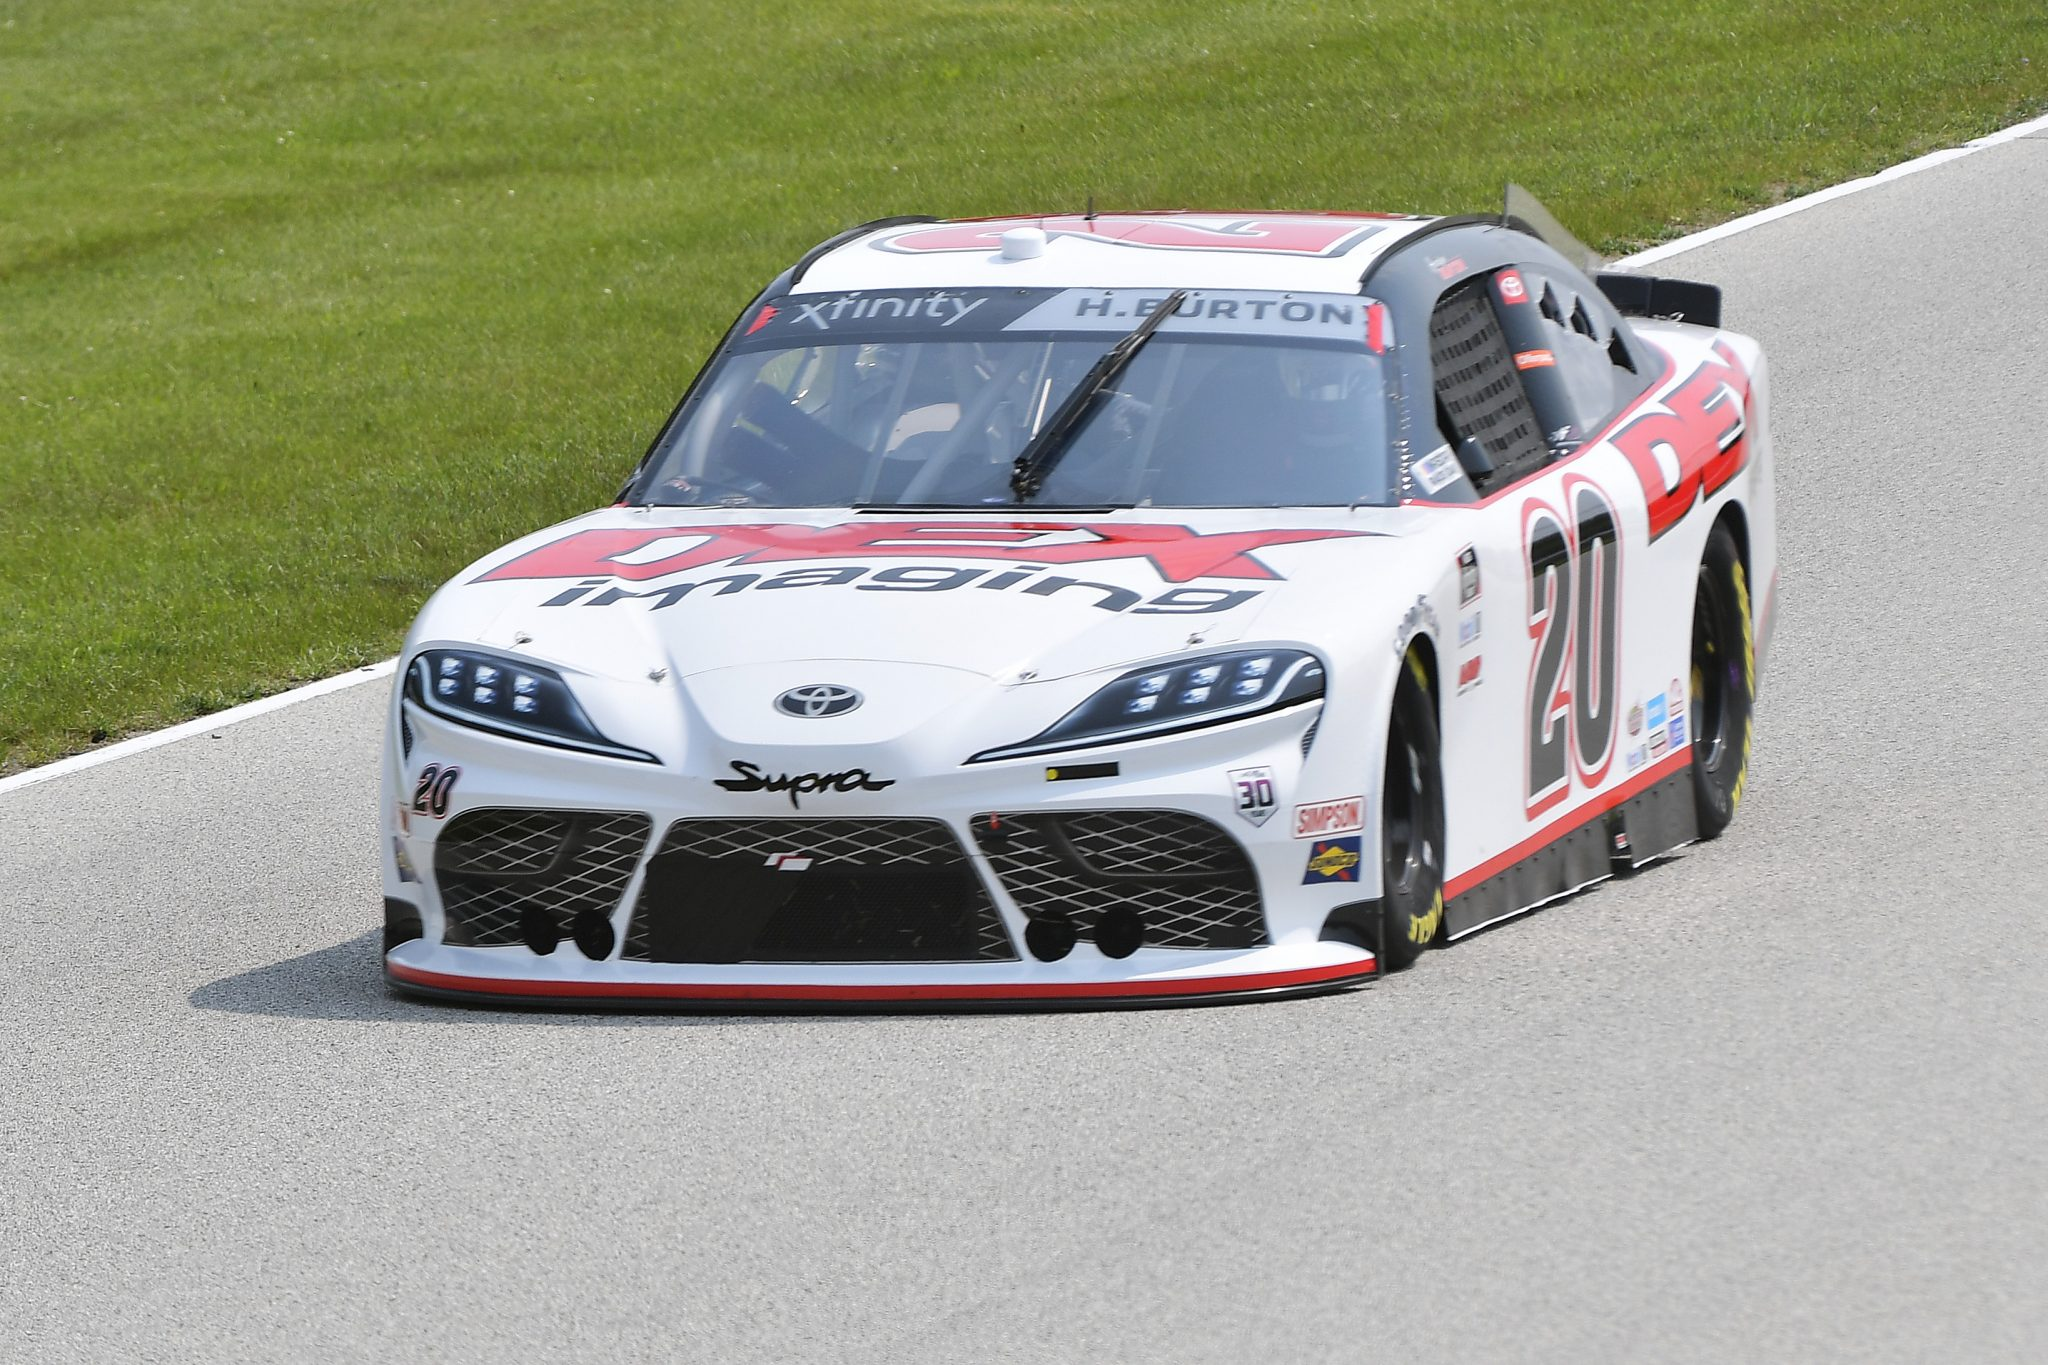 ELKHART LAKE, WISCONSIN - JULY 02: Harrison Burton, driver of the #20 DEX Imaging Toyota, drives during practice for the NASCAR Xfinity Series Henry 180 at Road America on July 02, 2021 in Elkhart Lake, Wisconsin. (Photo by Logan Riely/Getty Images) | Getty Images